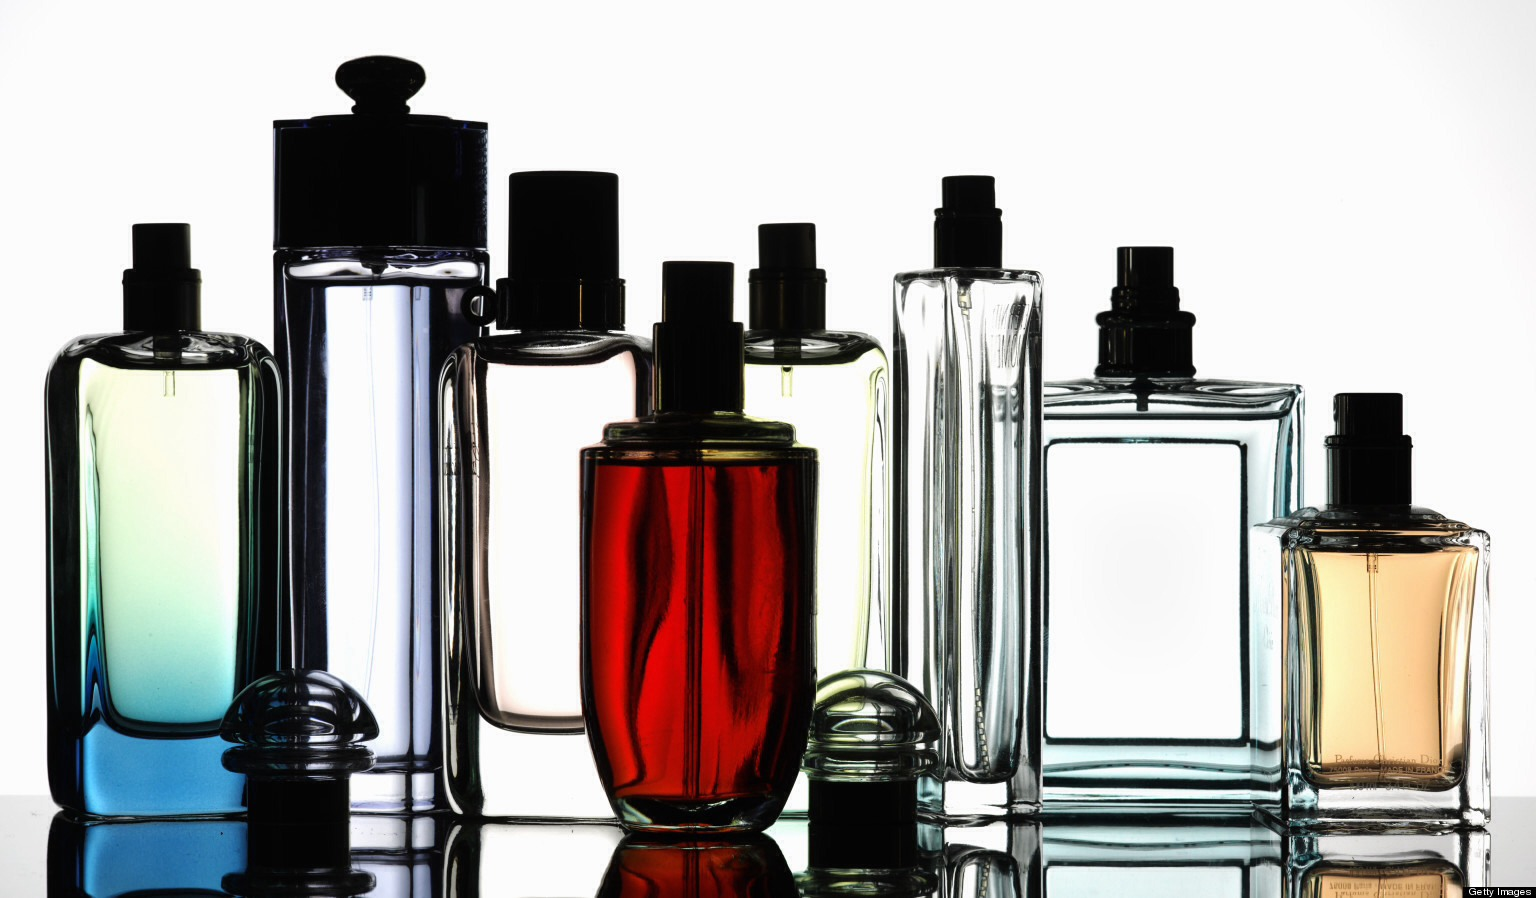 Fragrances usually last up to 3 years from when they are manufactured- always check the expiration date or manufactured date for fragrances bought in discount shops